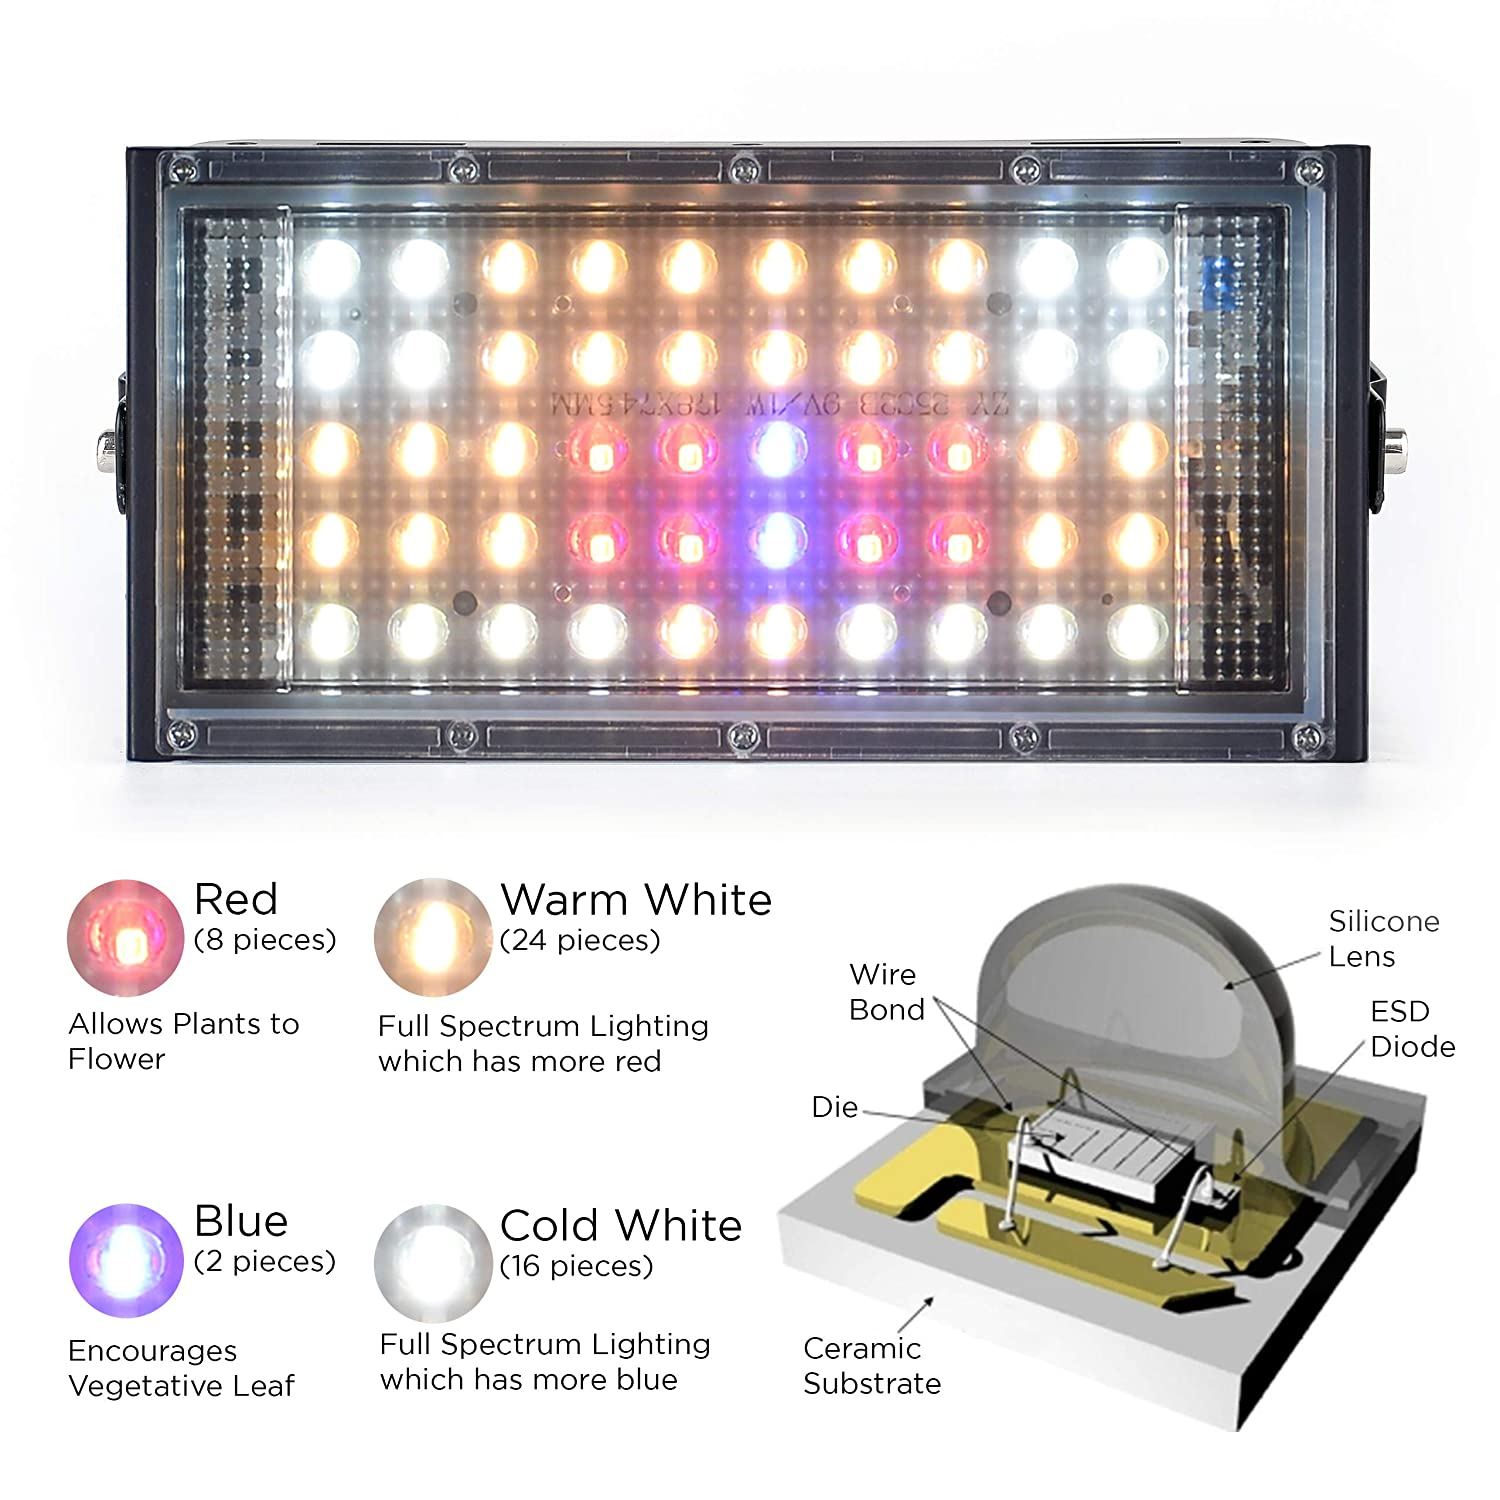 ECRU LED Grow Light Panel – 150W Equivalent Grow Lights with Natural Full Spectrum LED Light Bulbs for Indoor Plant Vegetation and Flowering – LED Indoor Grow Light